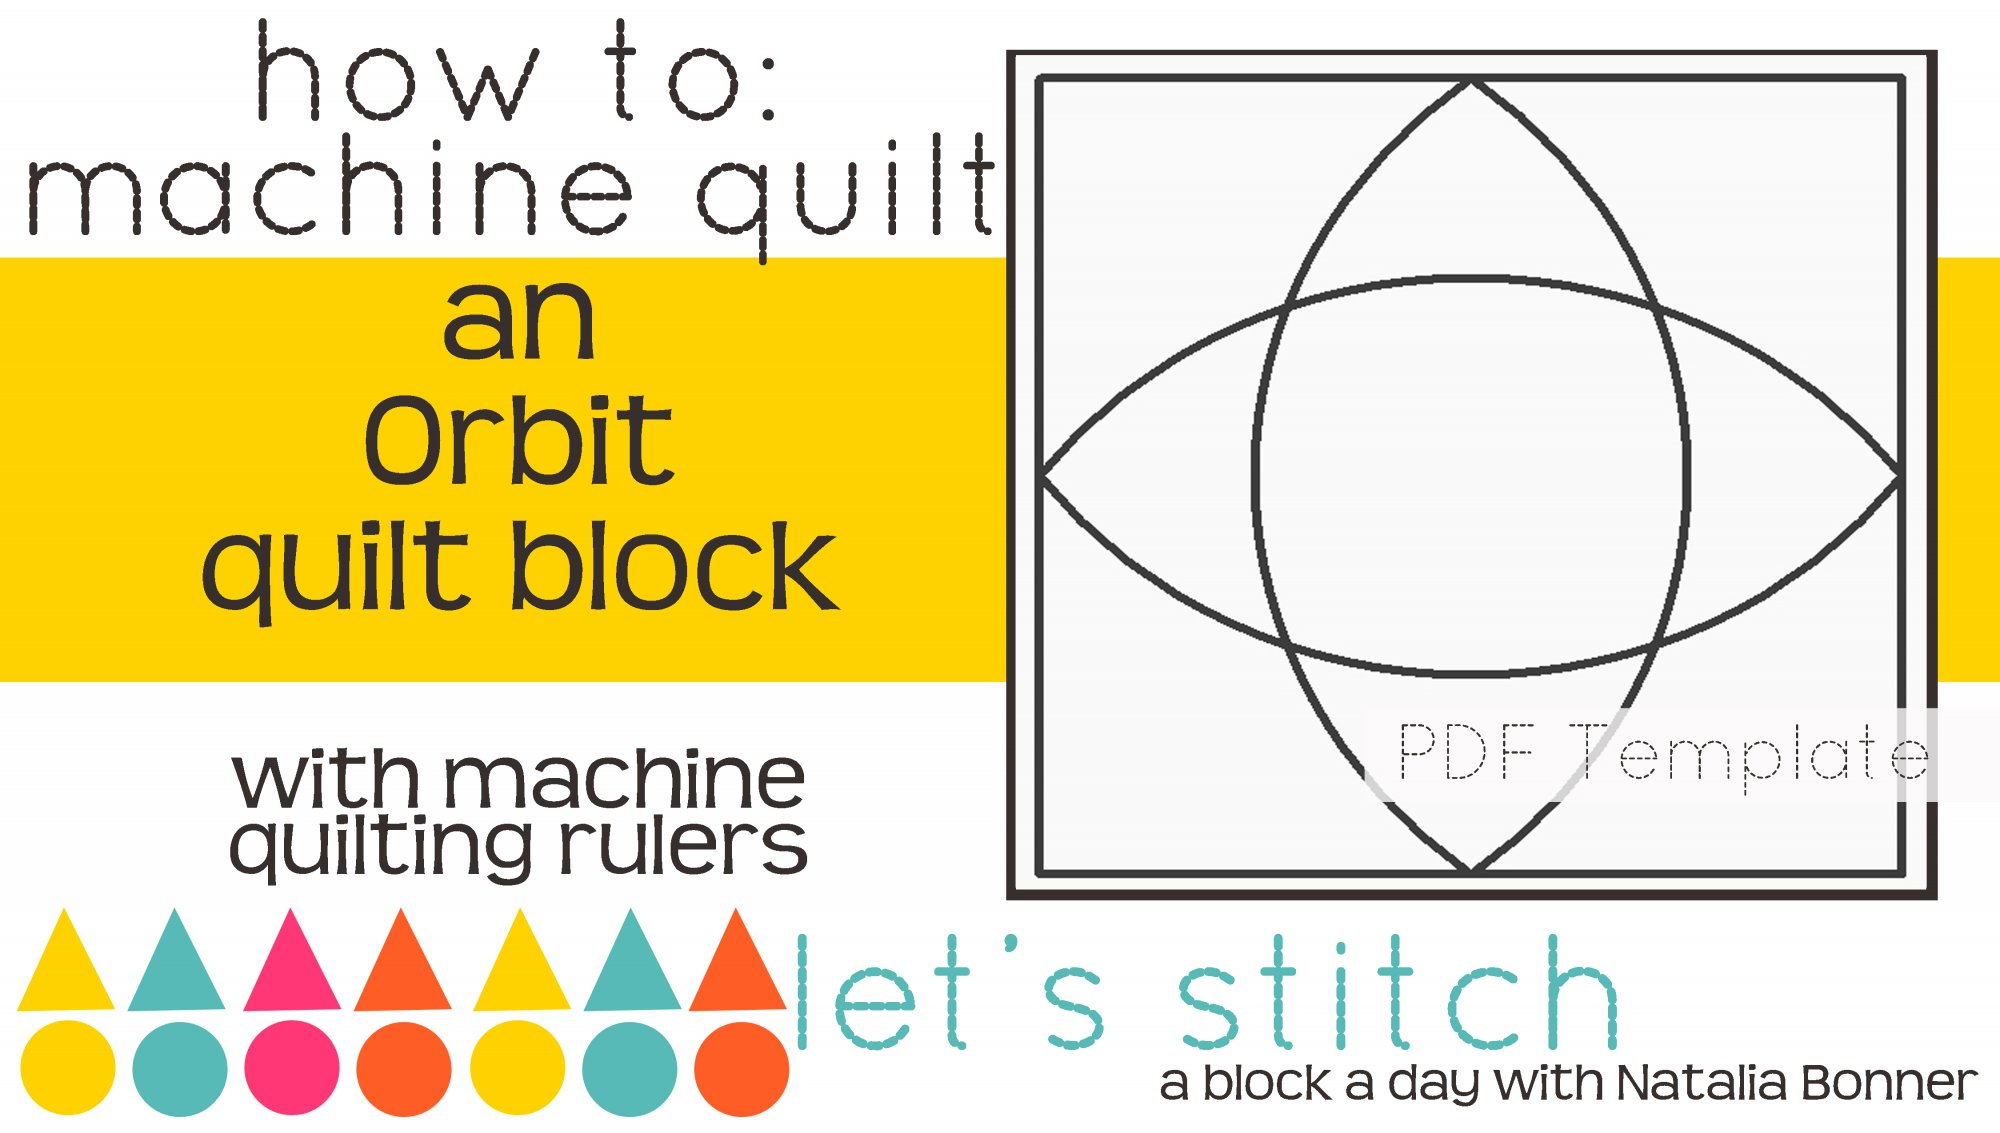 Let's Stitch - A Block a Day With Natalia Bonner - PDF - Orbit